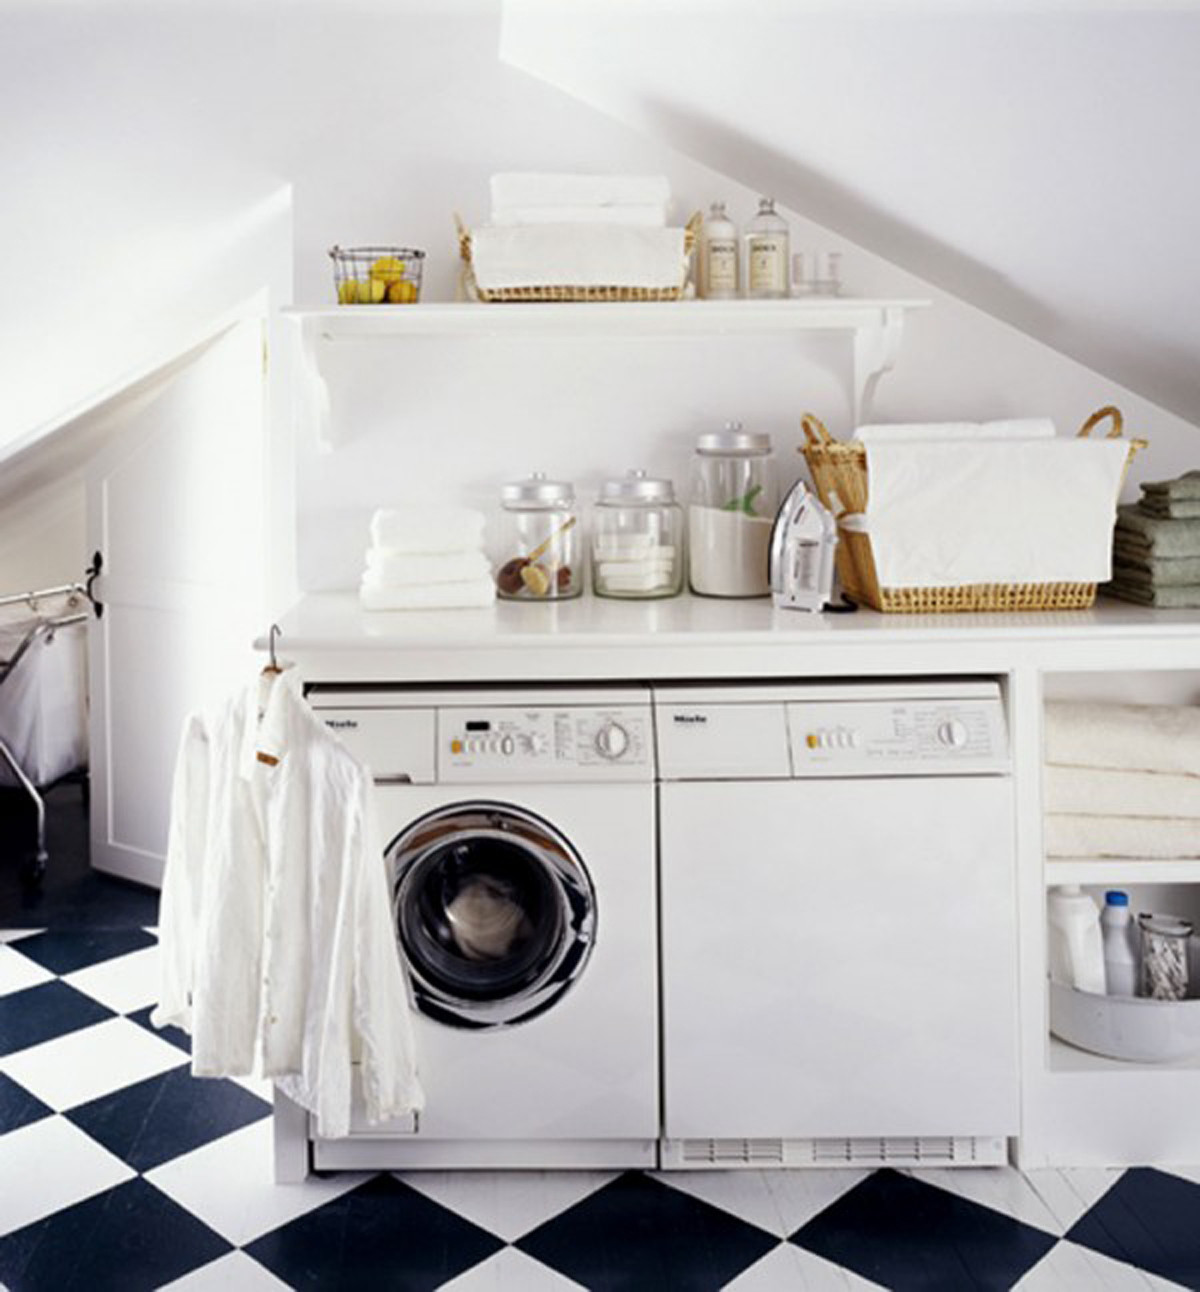 Best ideas about The Laundry Room . Save or Pin hunted interior Laundry Room Inspirations Now.